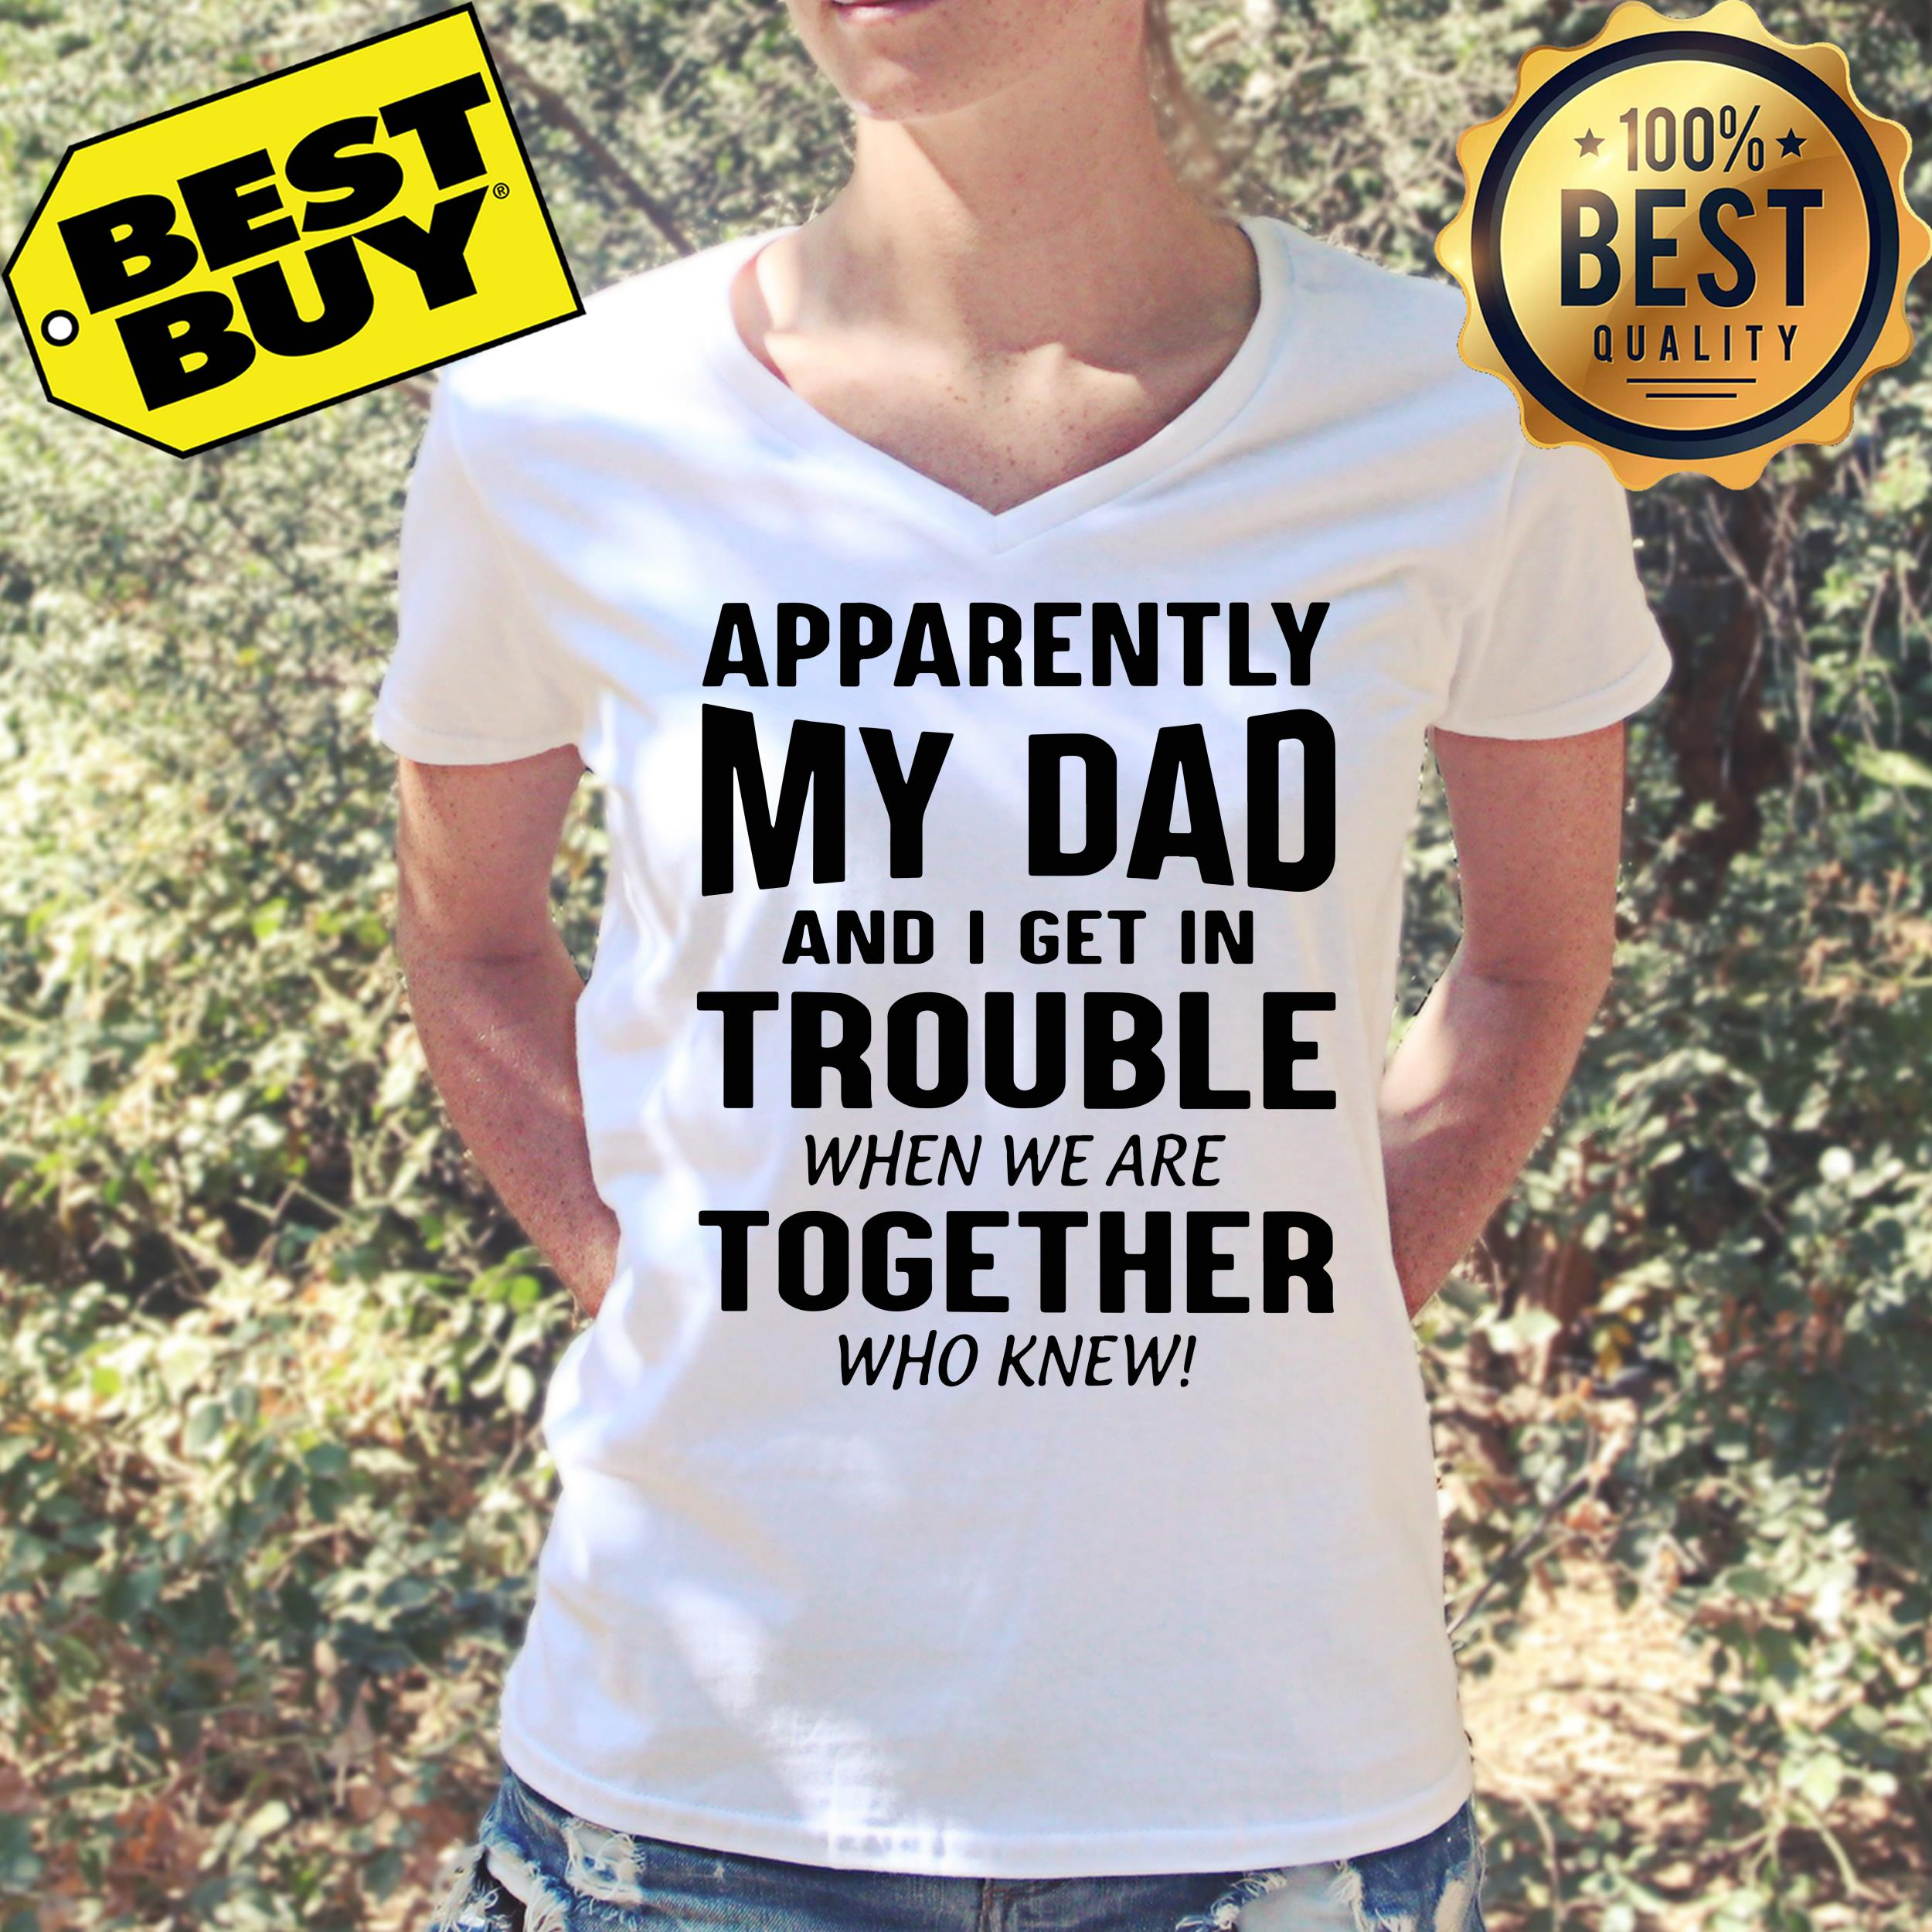 Apparently my dad and I get in trouble when we are together who knew shirt